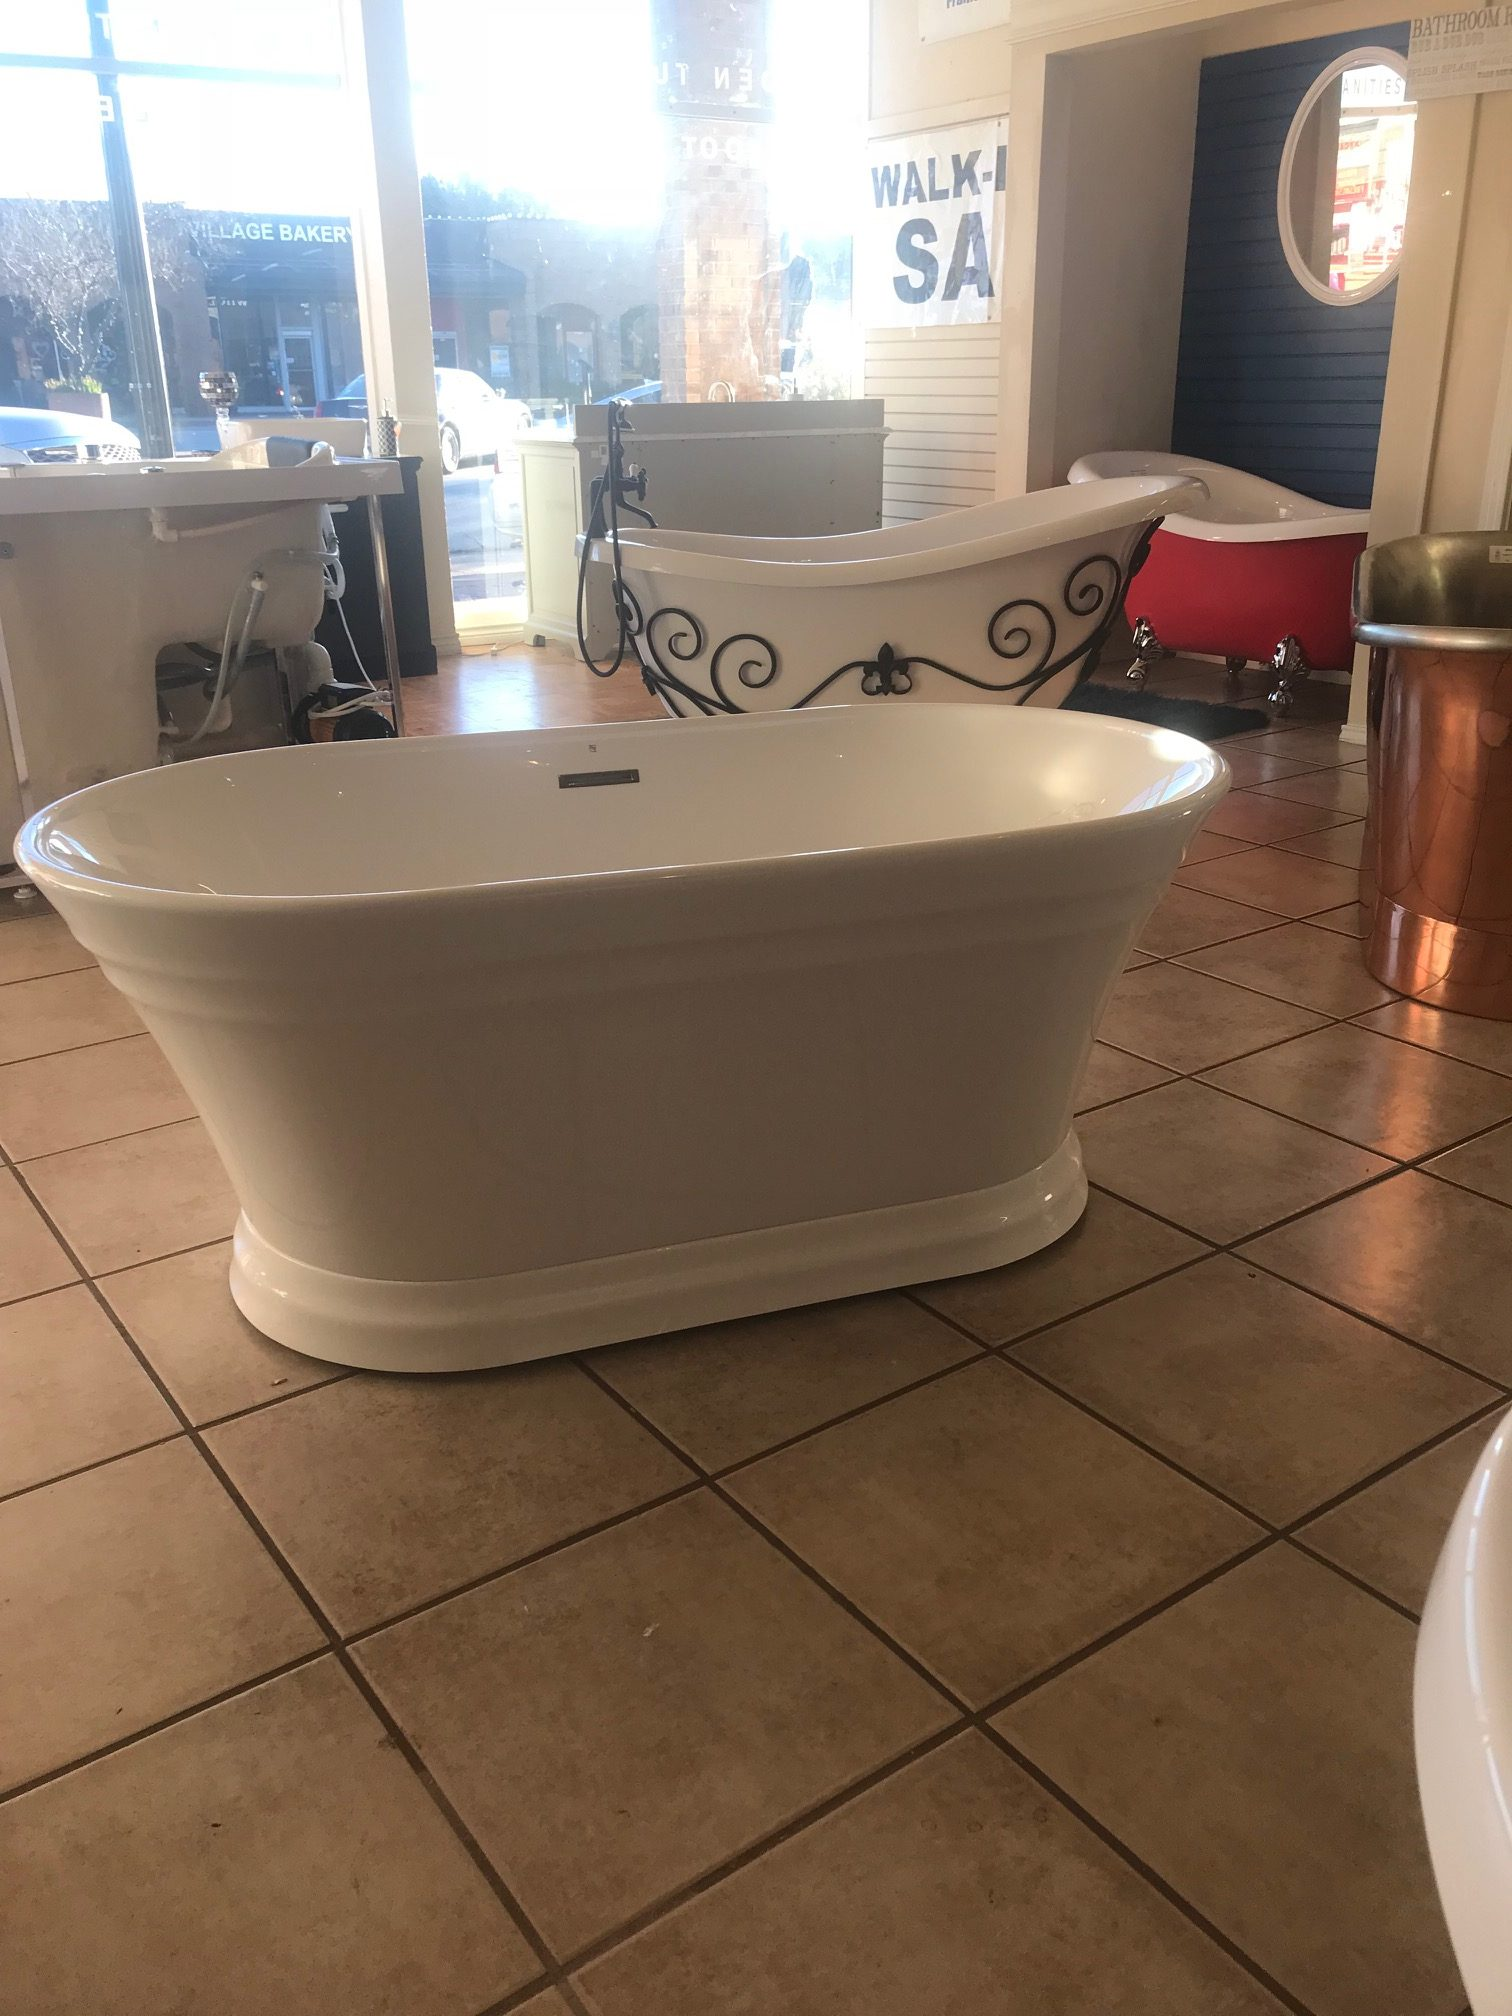 Discount Soaking Tubs. Imperia Luxury Tub For Two With Discount ...